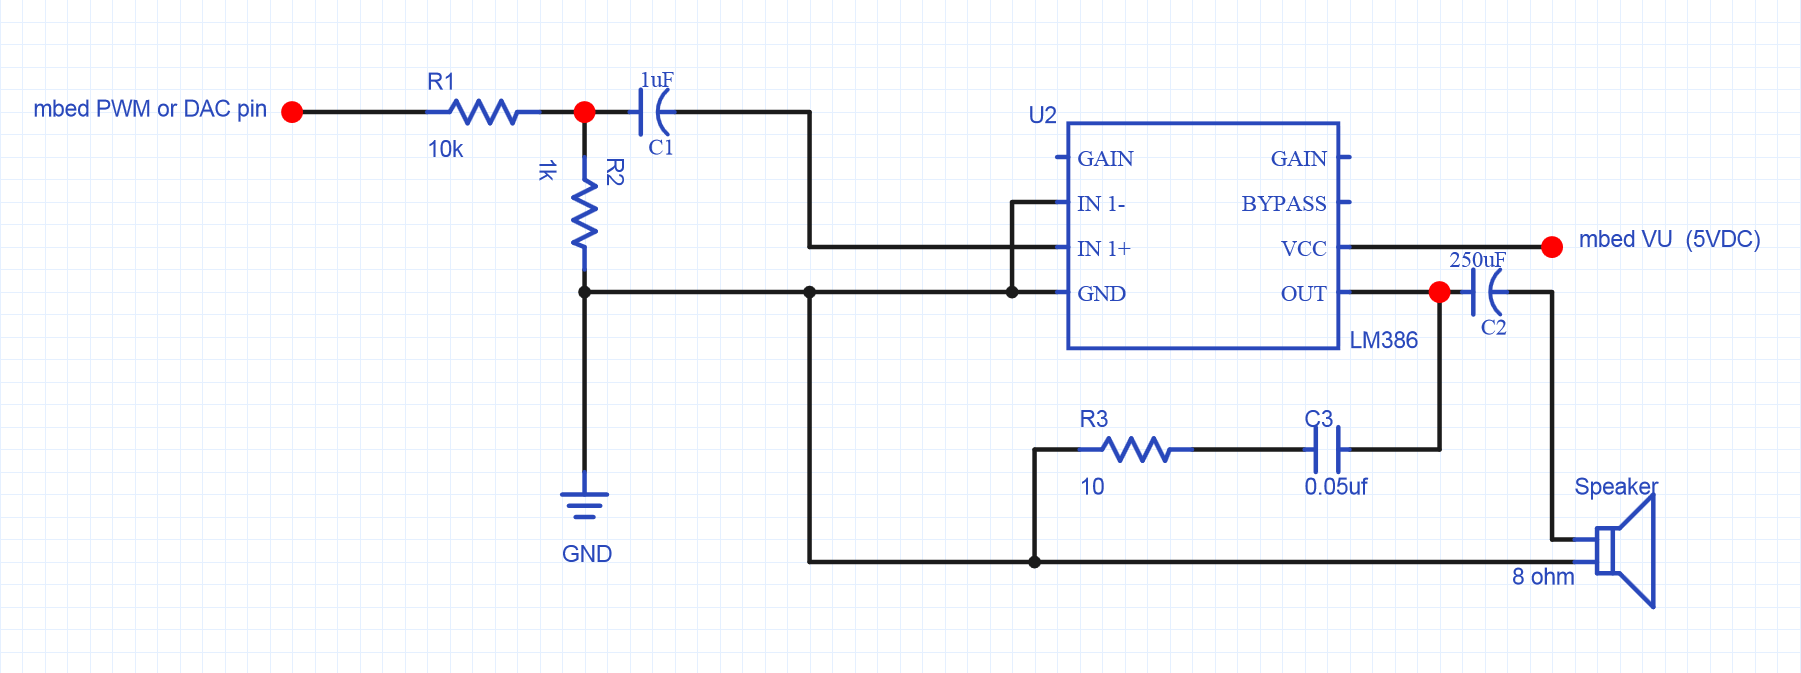 hight resolution of lm386 audio amplifier circuit for small 8ohm 5w speaker a smaller value for r1 can be used to increase the volume